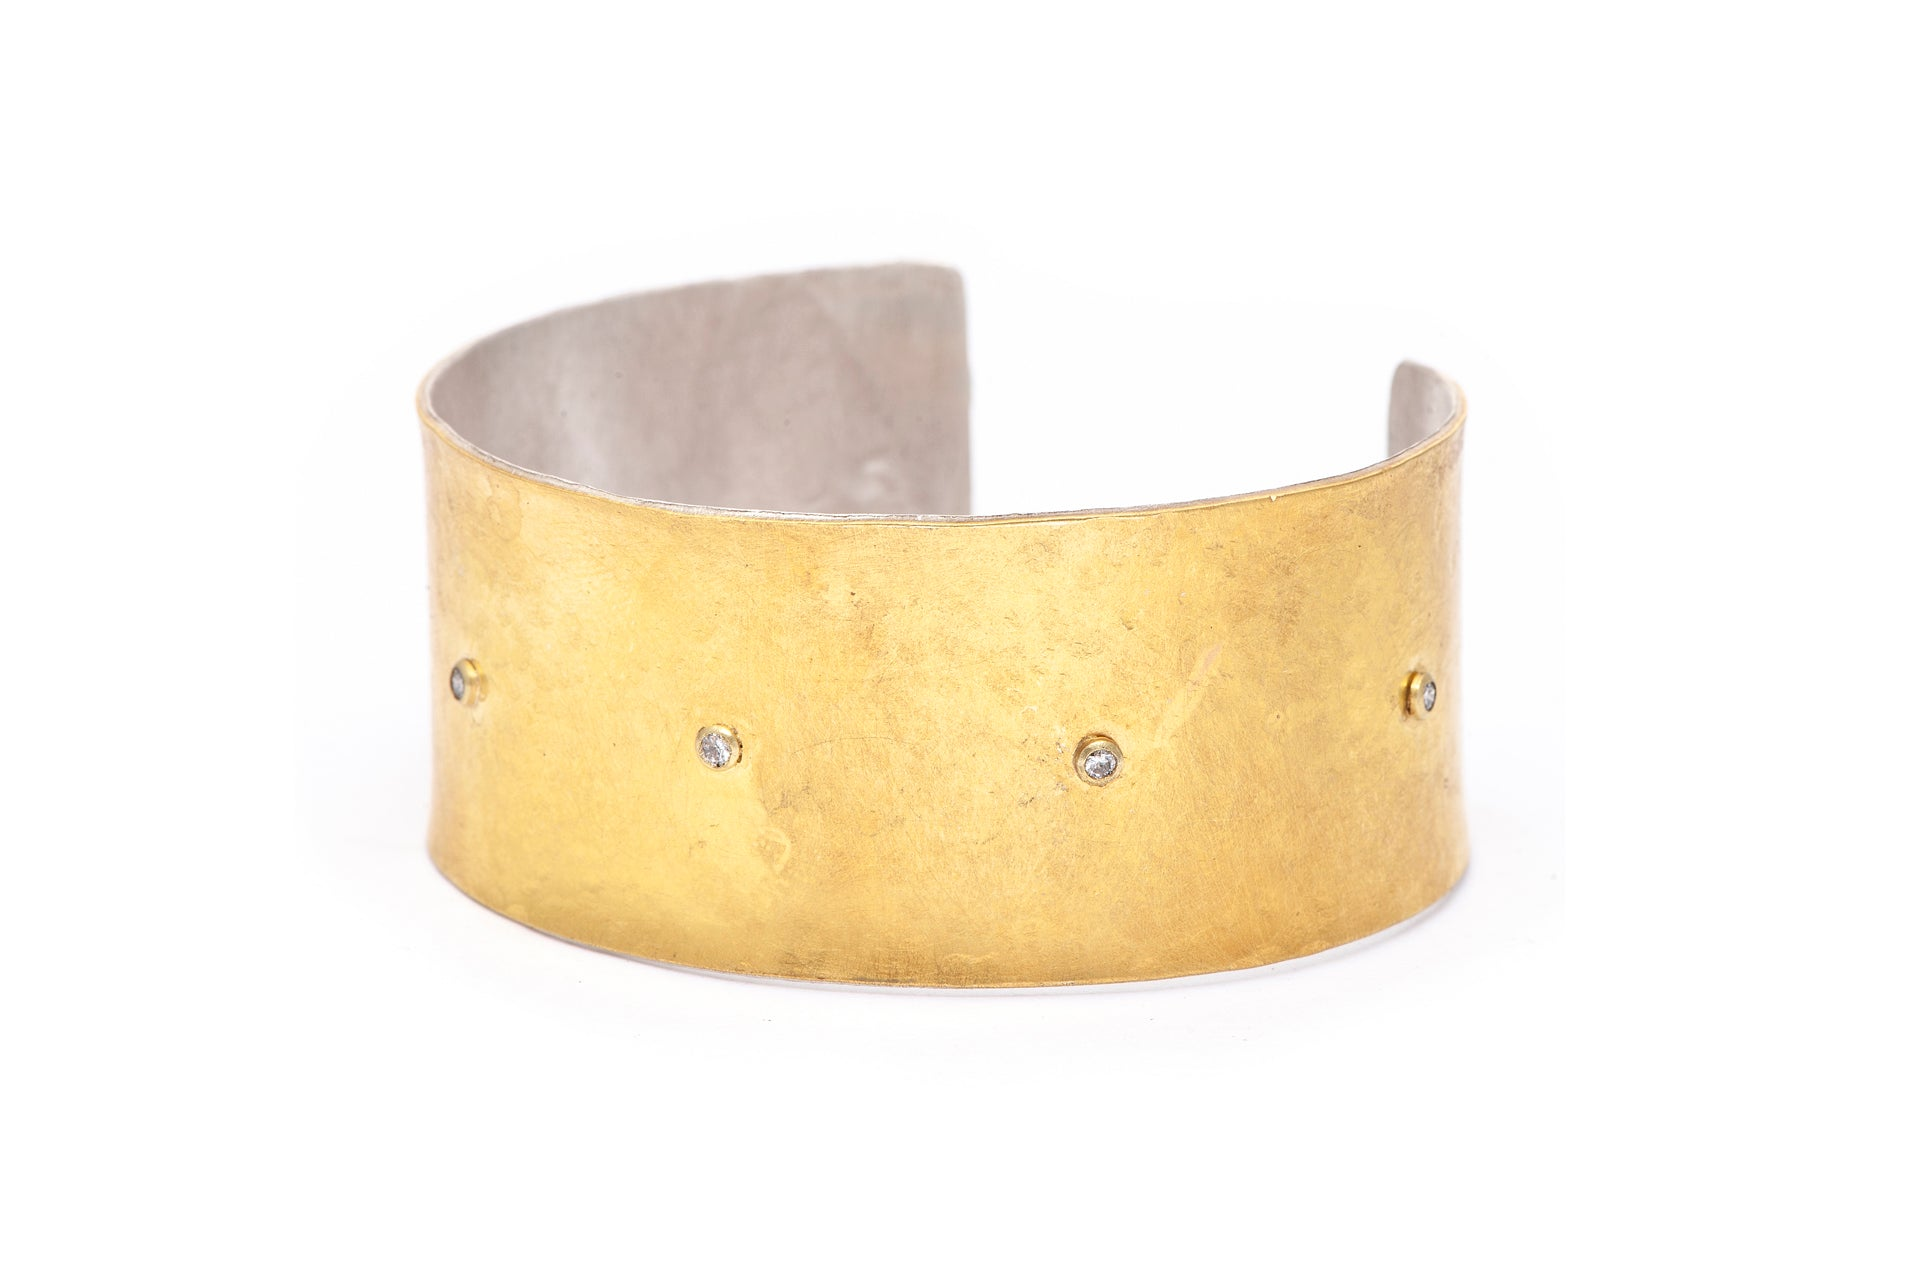 22k bi-metal cuff with diamonds